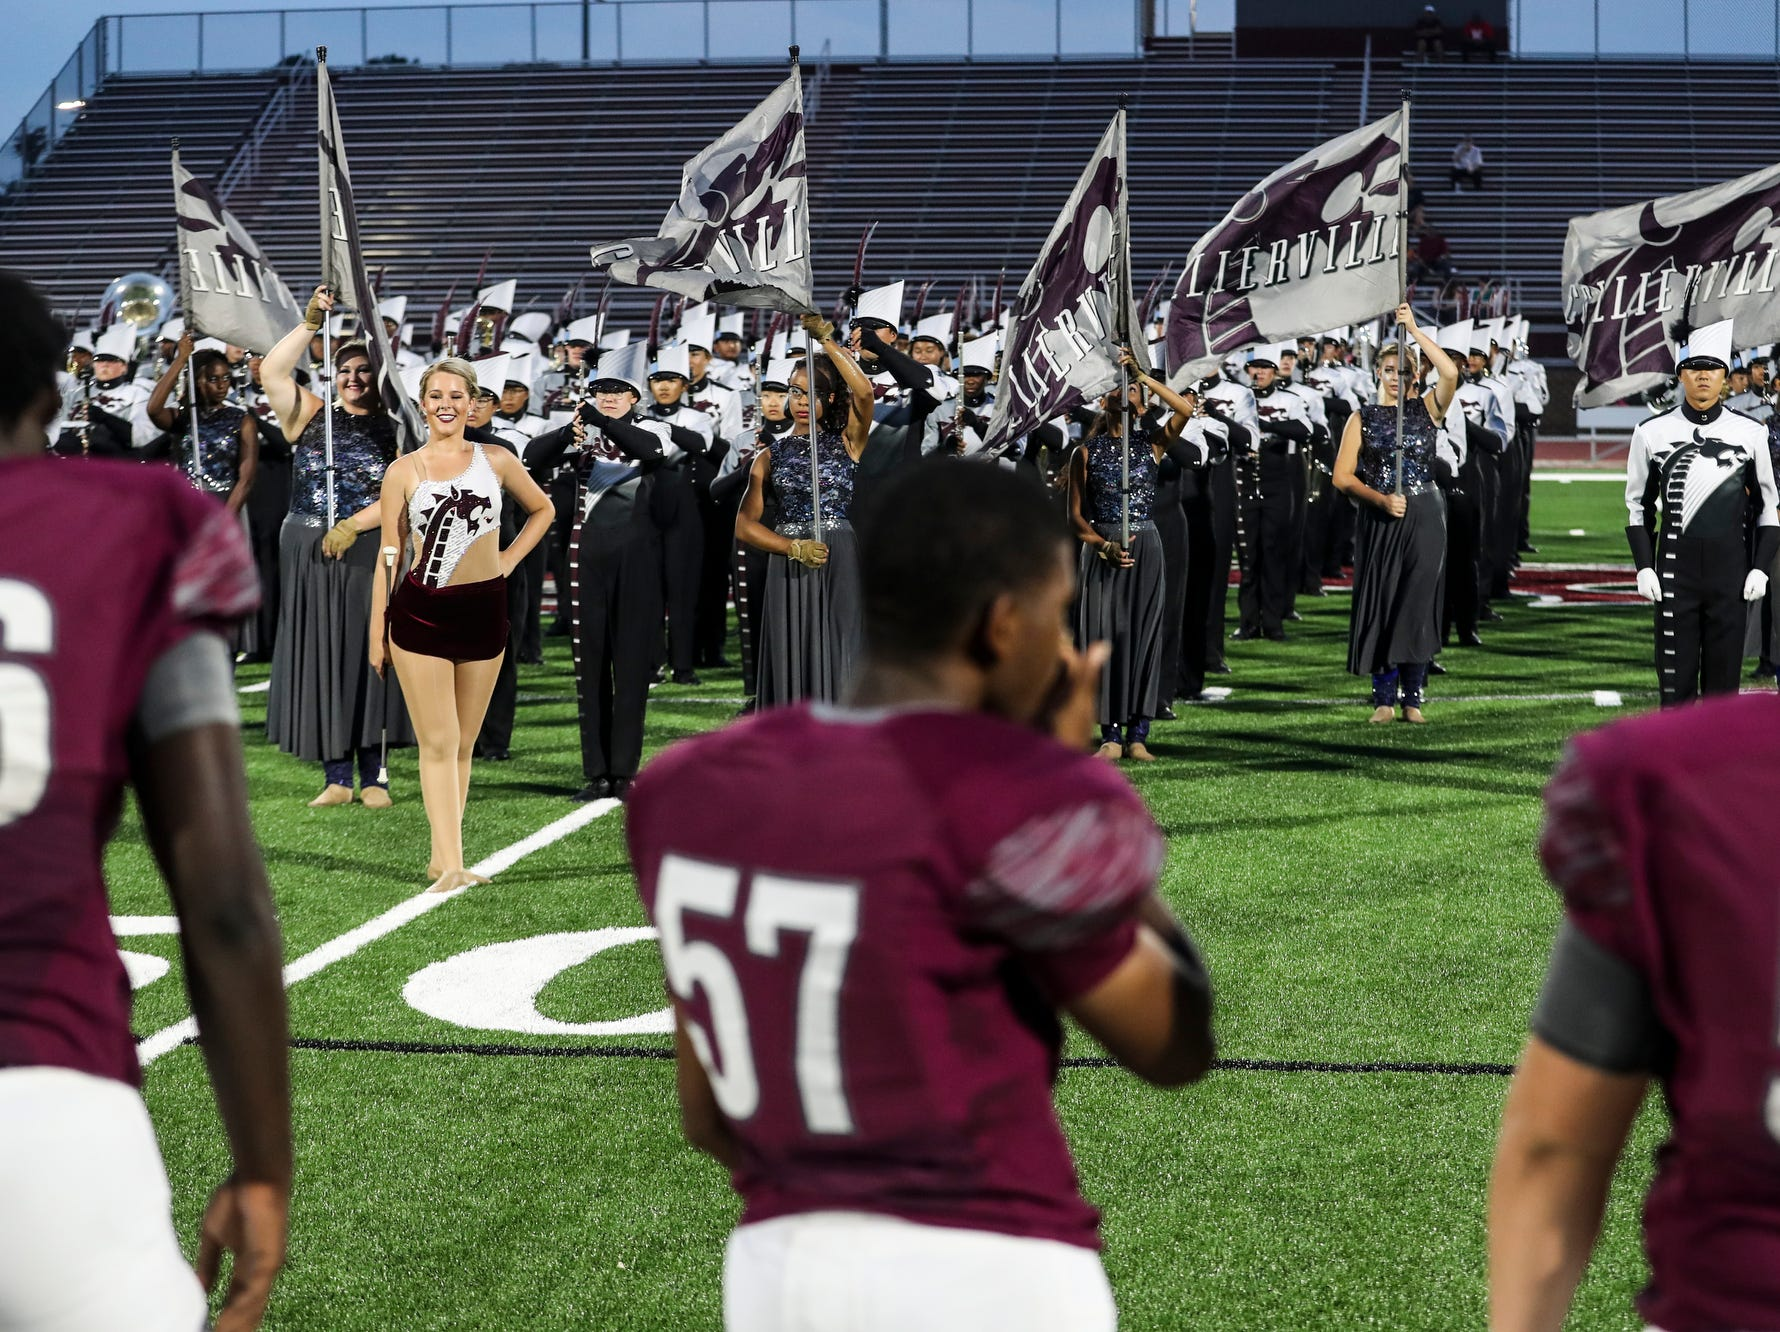 September 21 2018 - The Collierville High School marching band takes to the field before the start of Friday night's game versus Wooddale at Collierville High School.